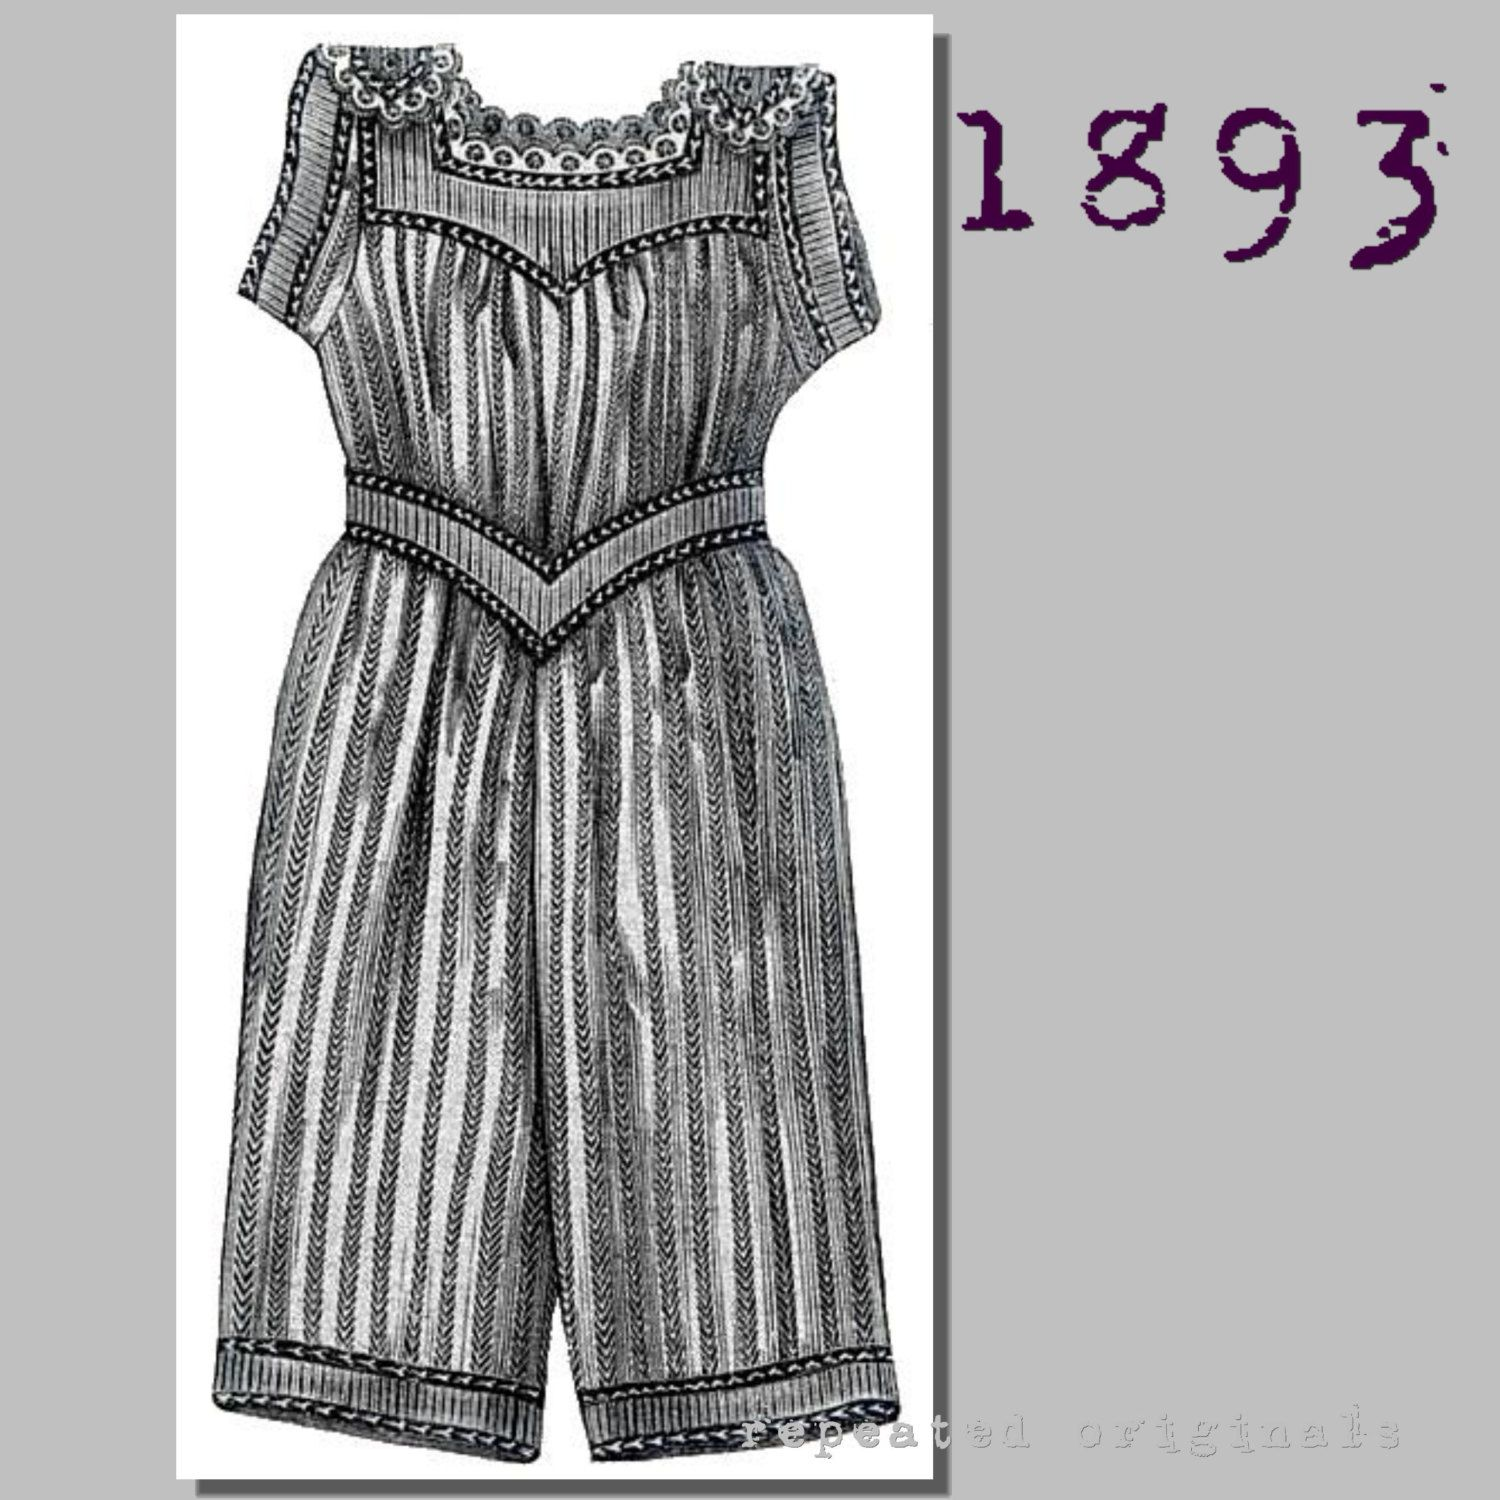 Bathing Costume for a Girl - Victorian Reproduction PDF Pattern - 1890's -  made from original 1893 pattern by RepeatedOriginals on Etsy